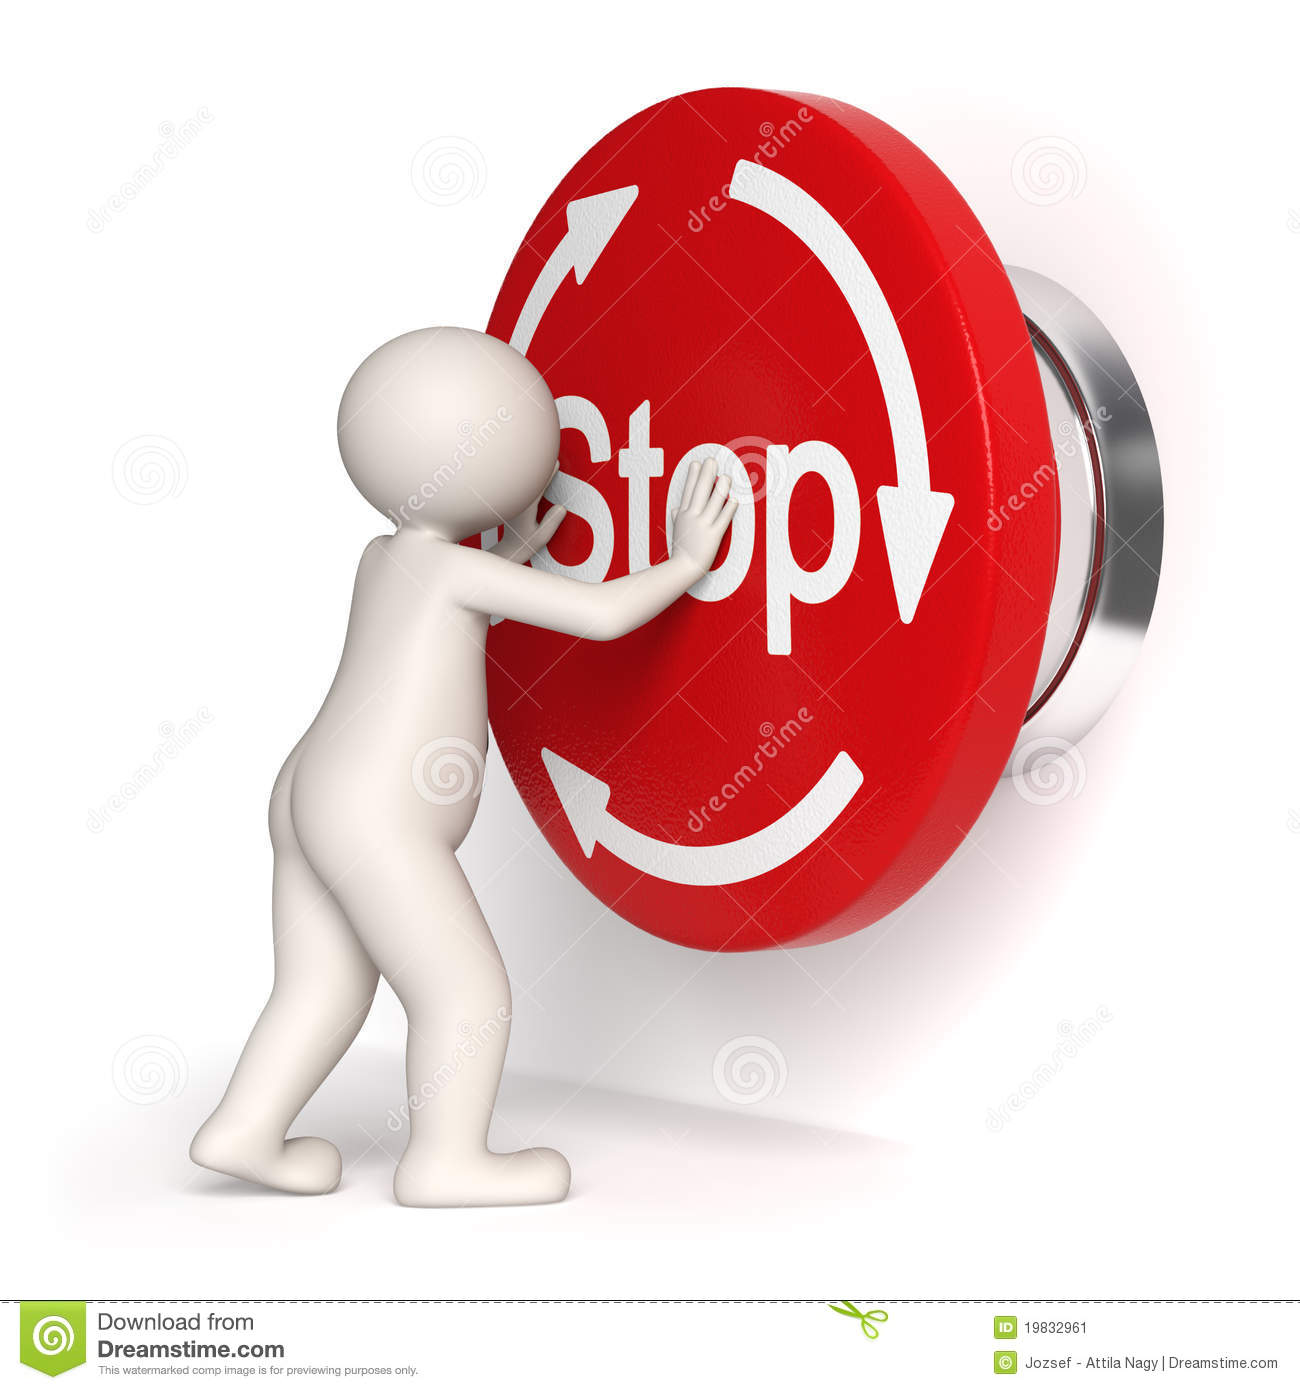 Emergency stop button 3d man stock illustration illustration of emergency stop button 3d man buycottarizona Images